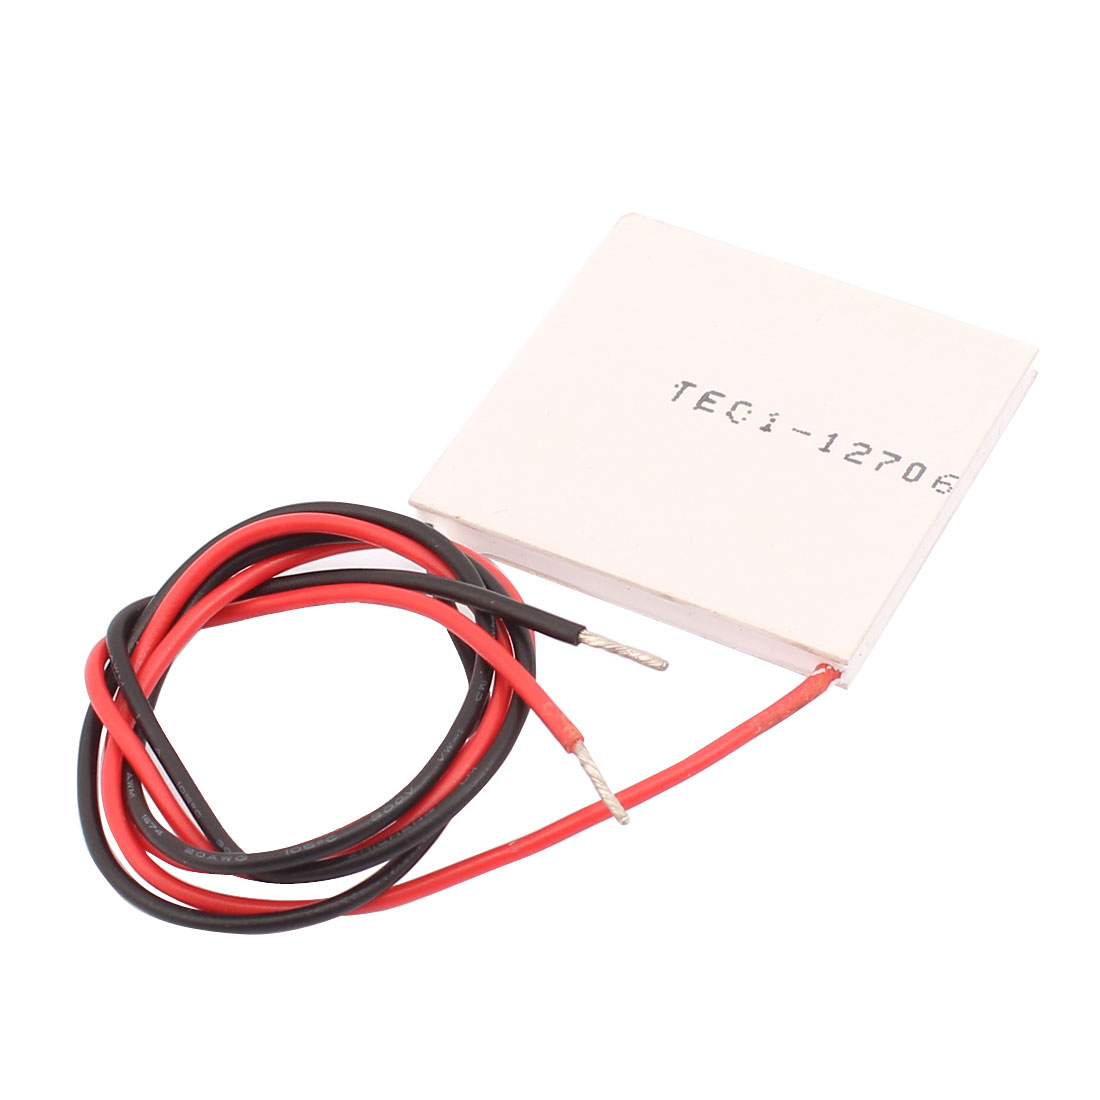 40 x 40mm Thermoelectric Cooler Module Cooling Plate TEC1-12706